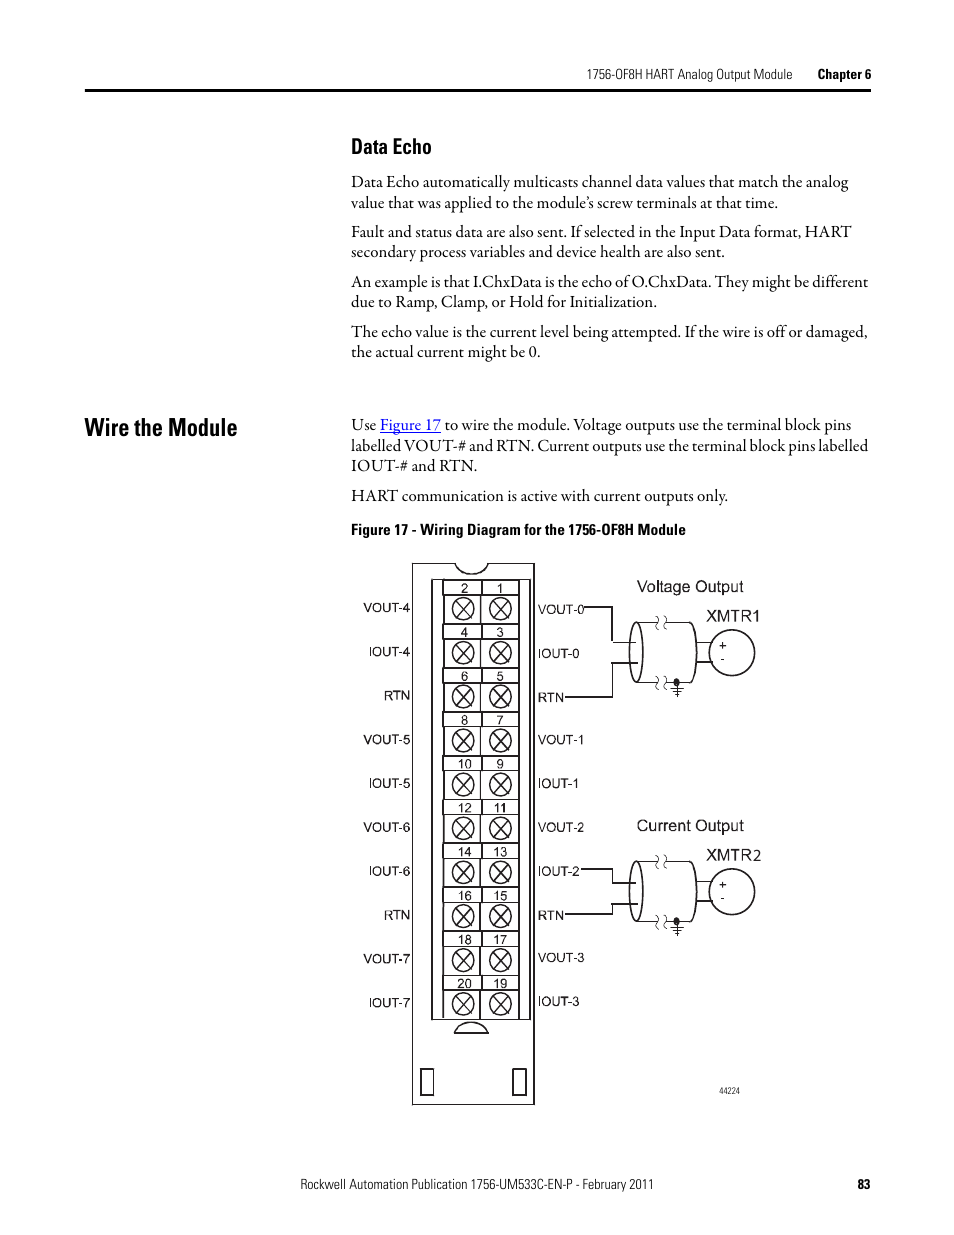 rockwell automation 1756 of8h controllogix hart analog i_o modules page83 wire the module, data echo rockwell automation 1756 of8h hard wiring diagram for goulds we0511h pump at bakdesigns.co